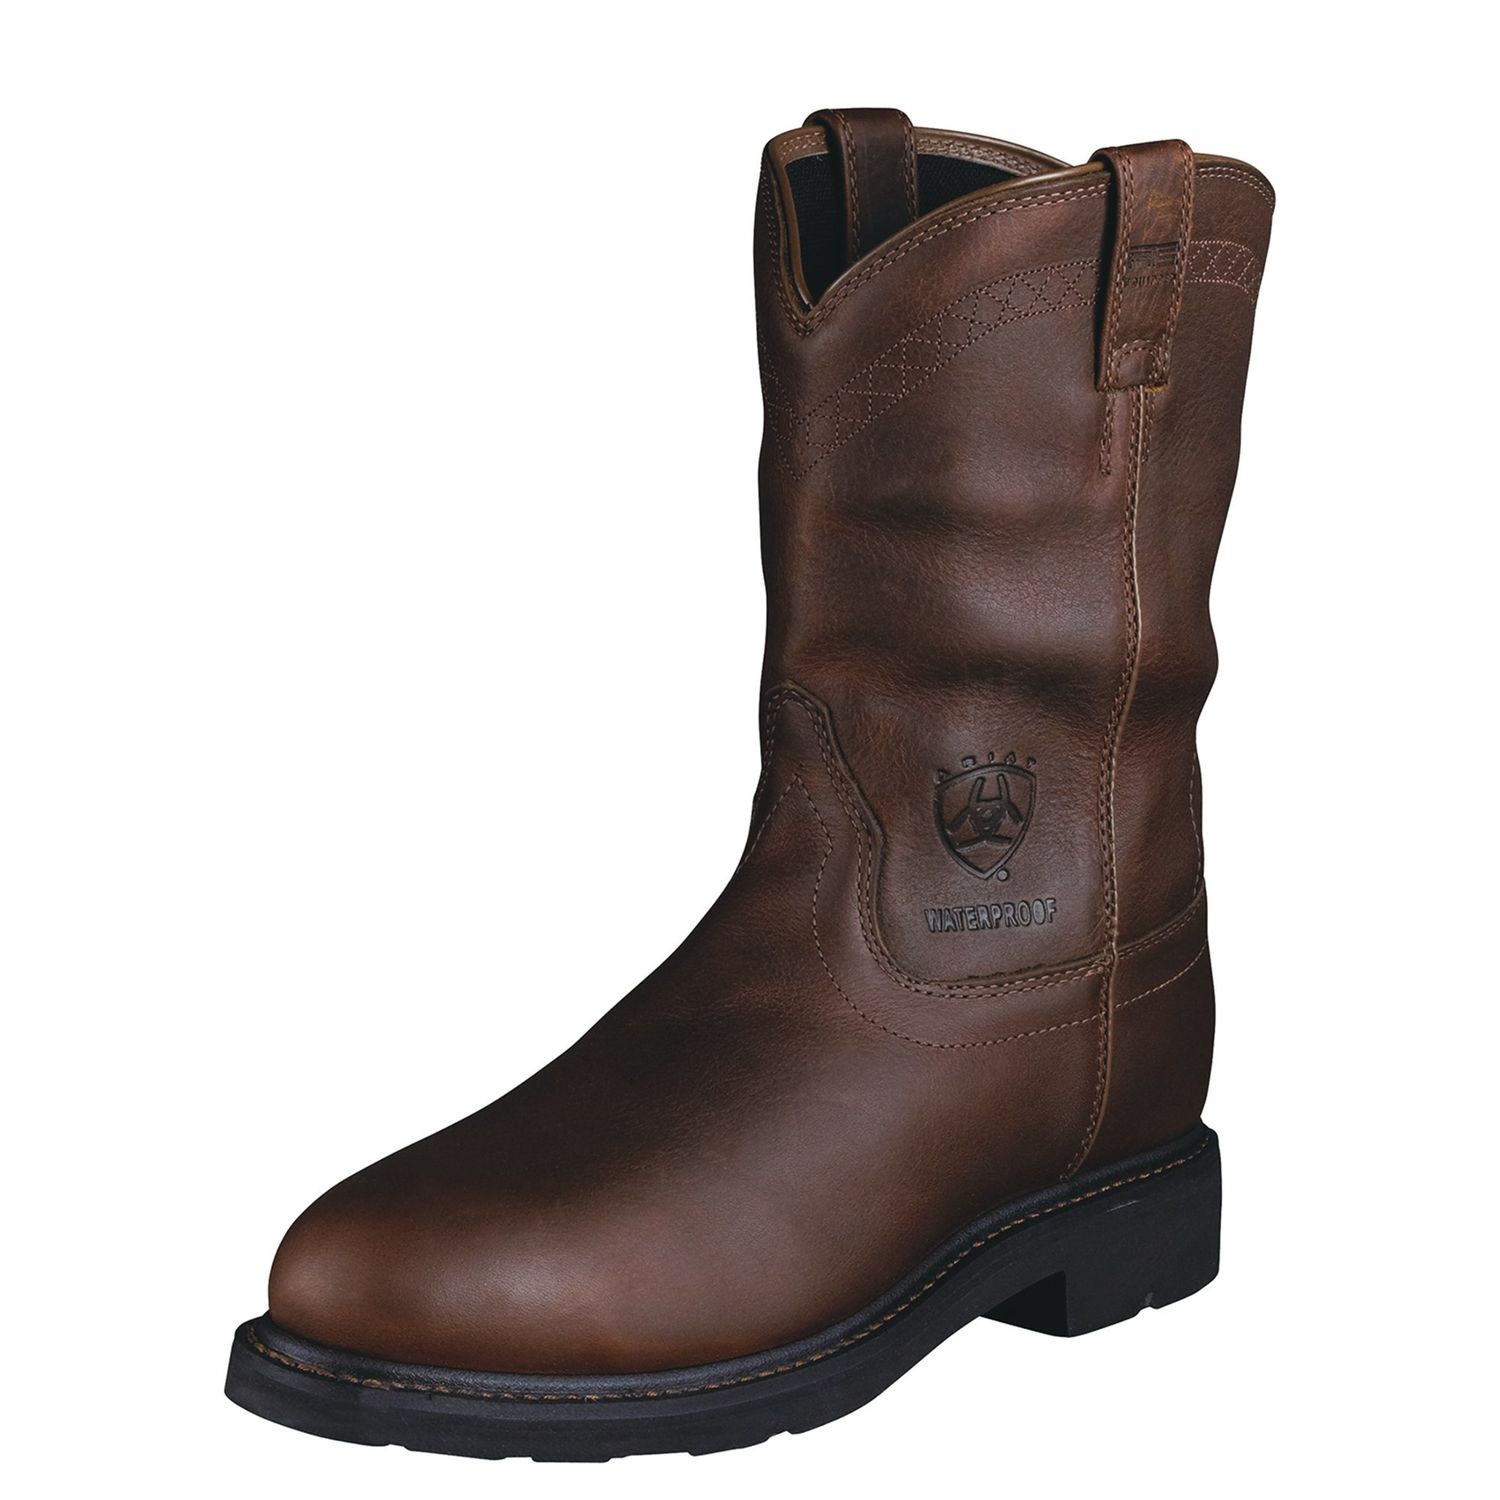 Ariat - Sierra H2O Steel Toe Boots-Ariat